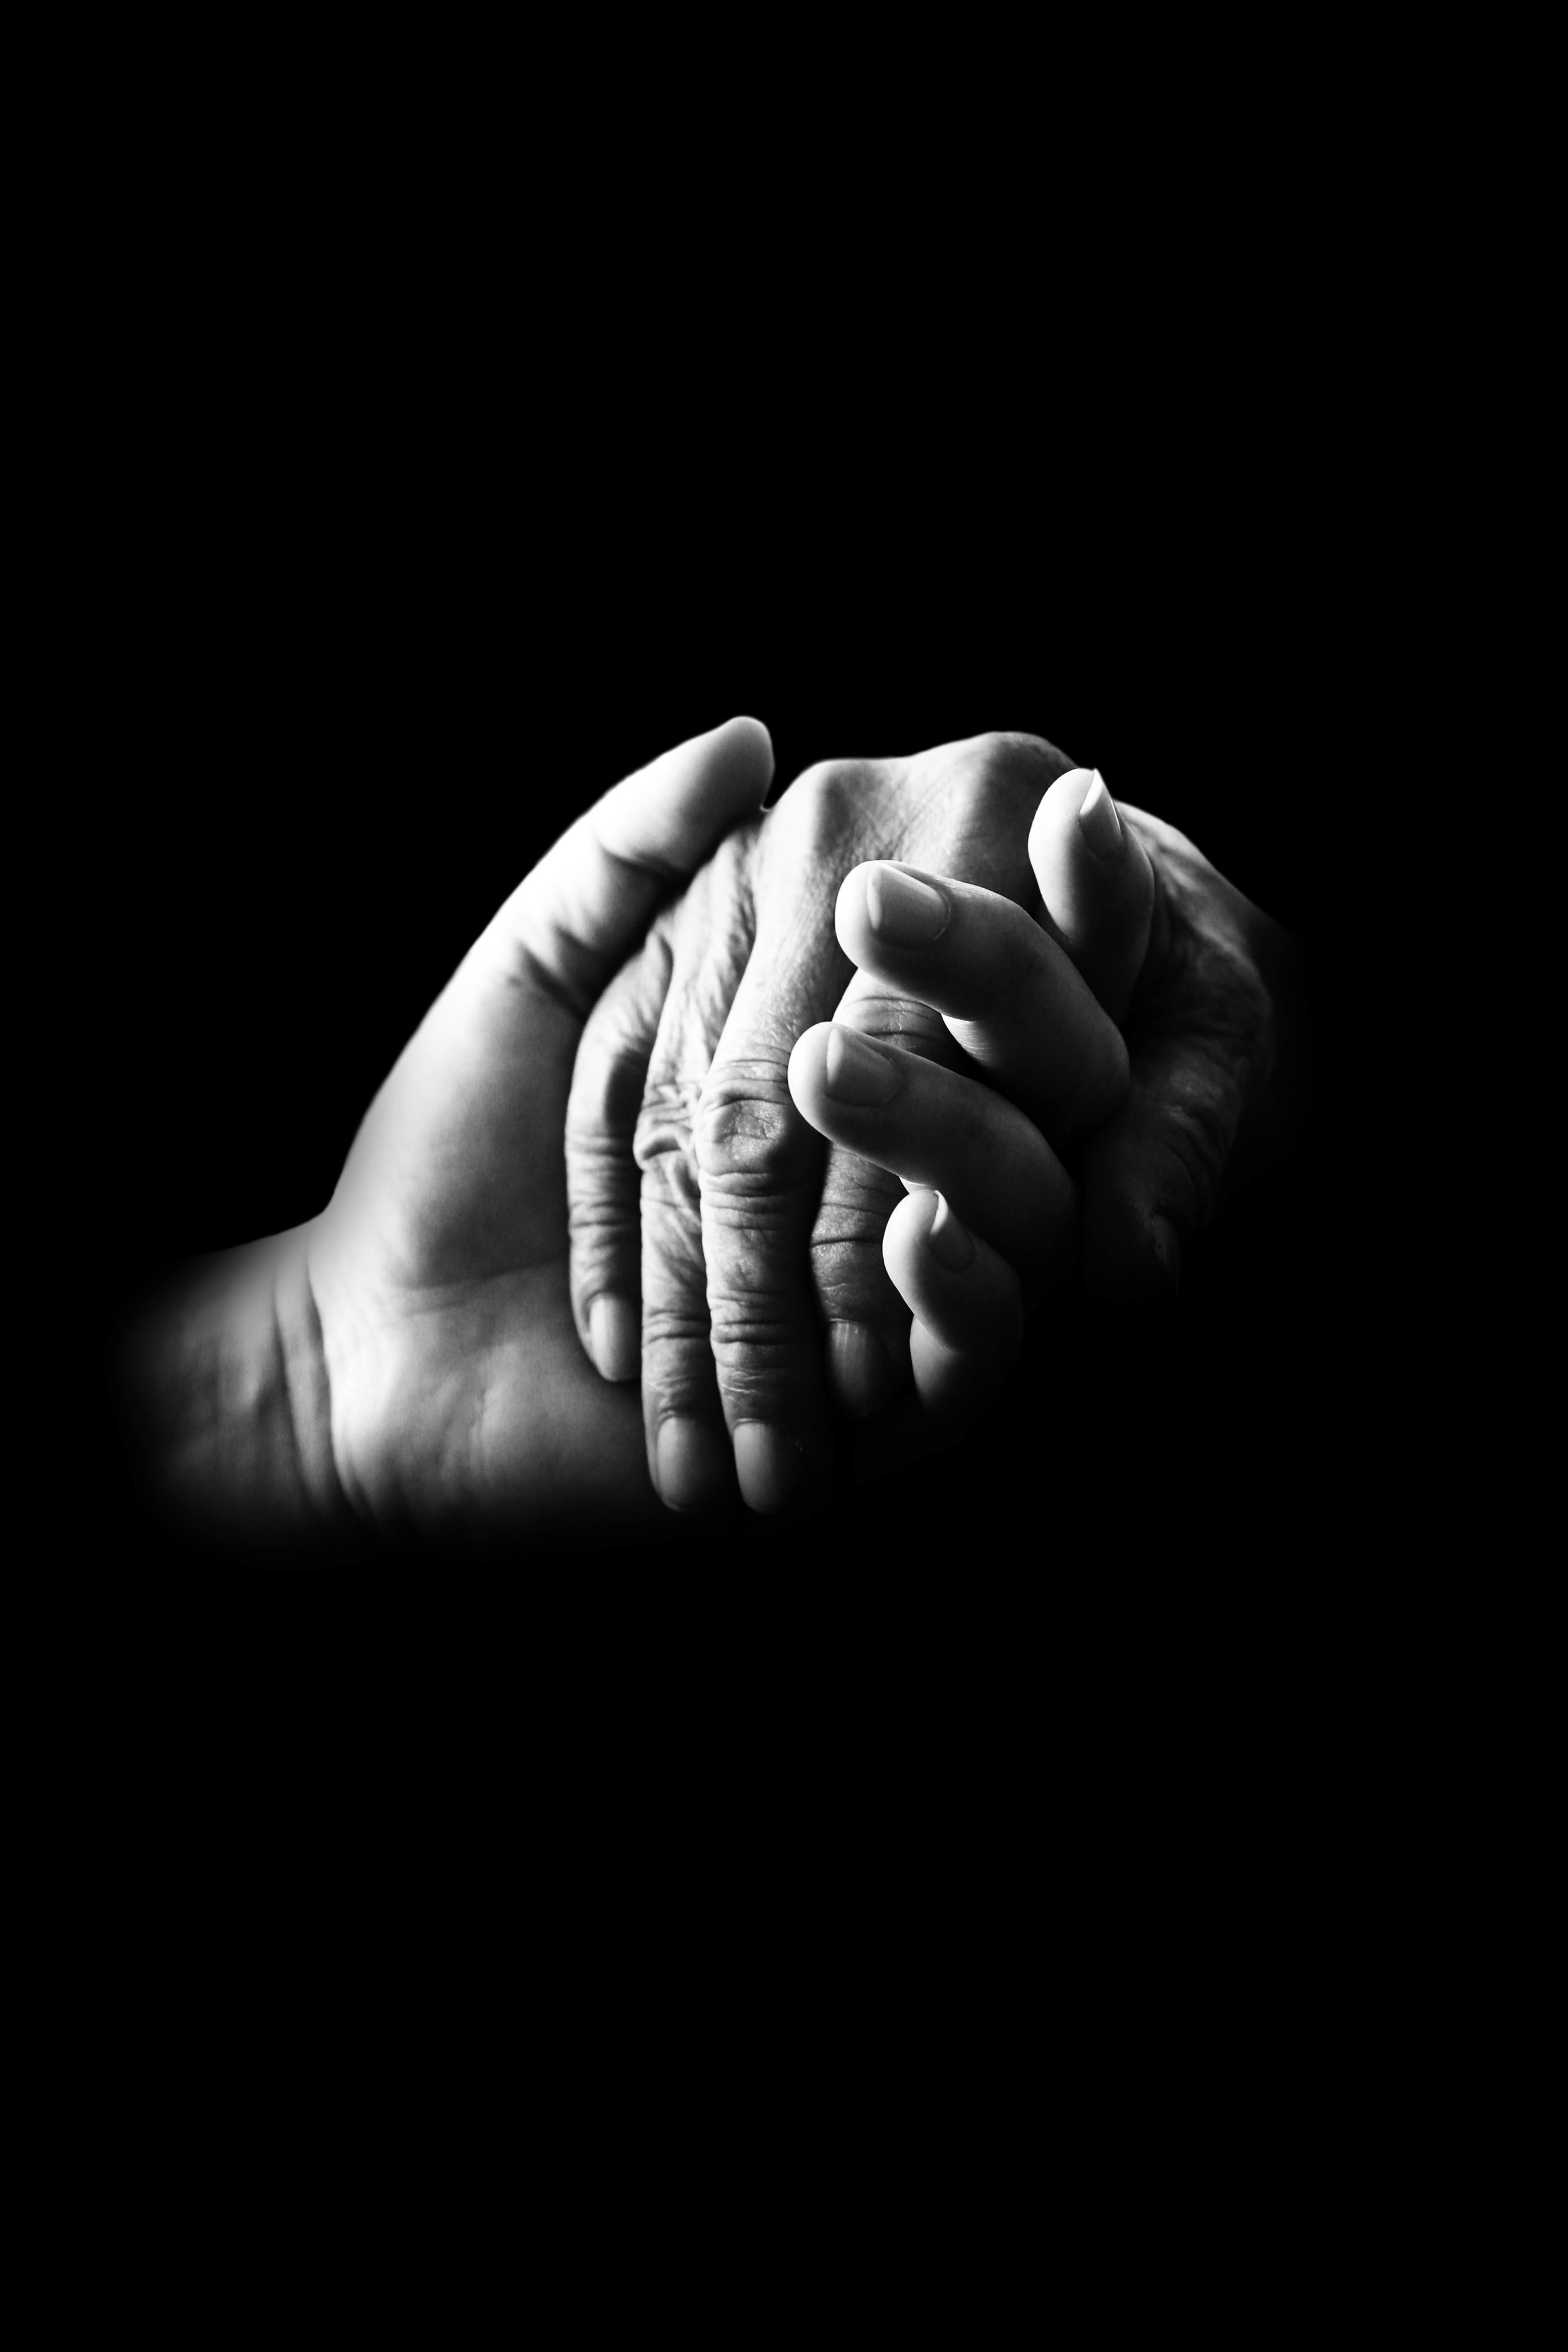 hands-of-compassion-1619013.jpg